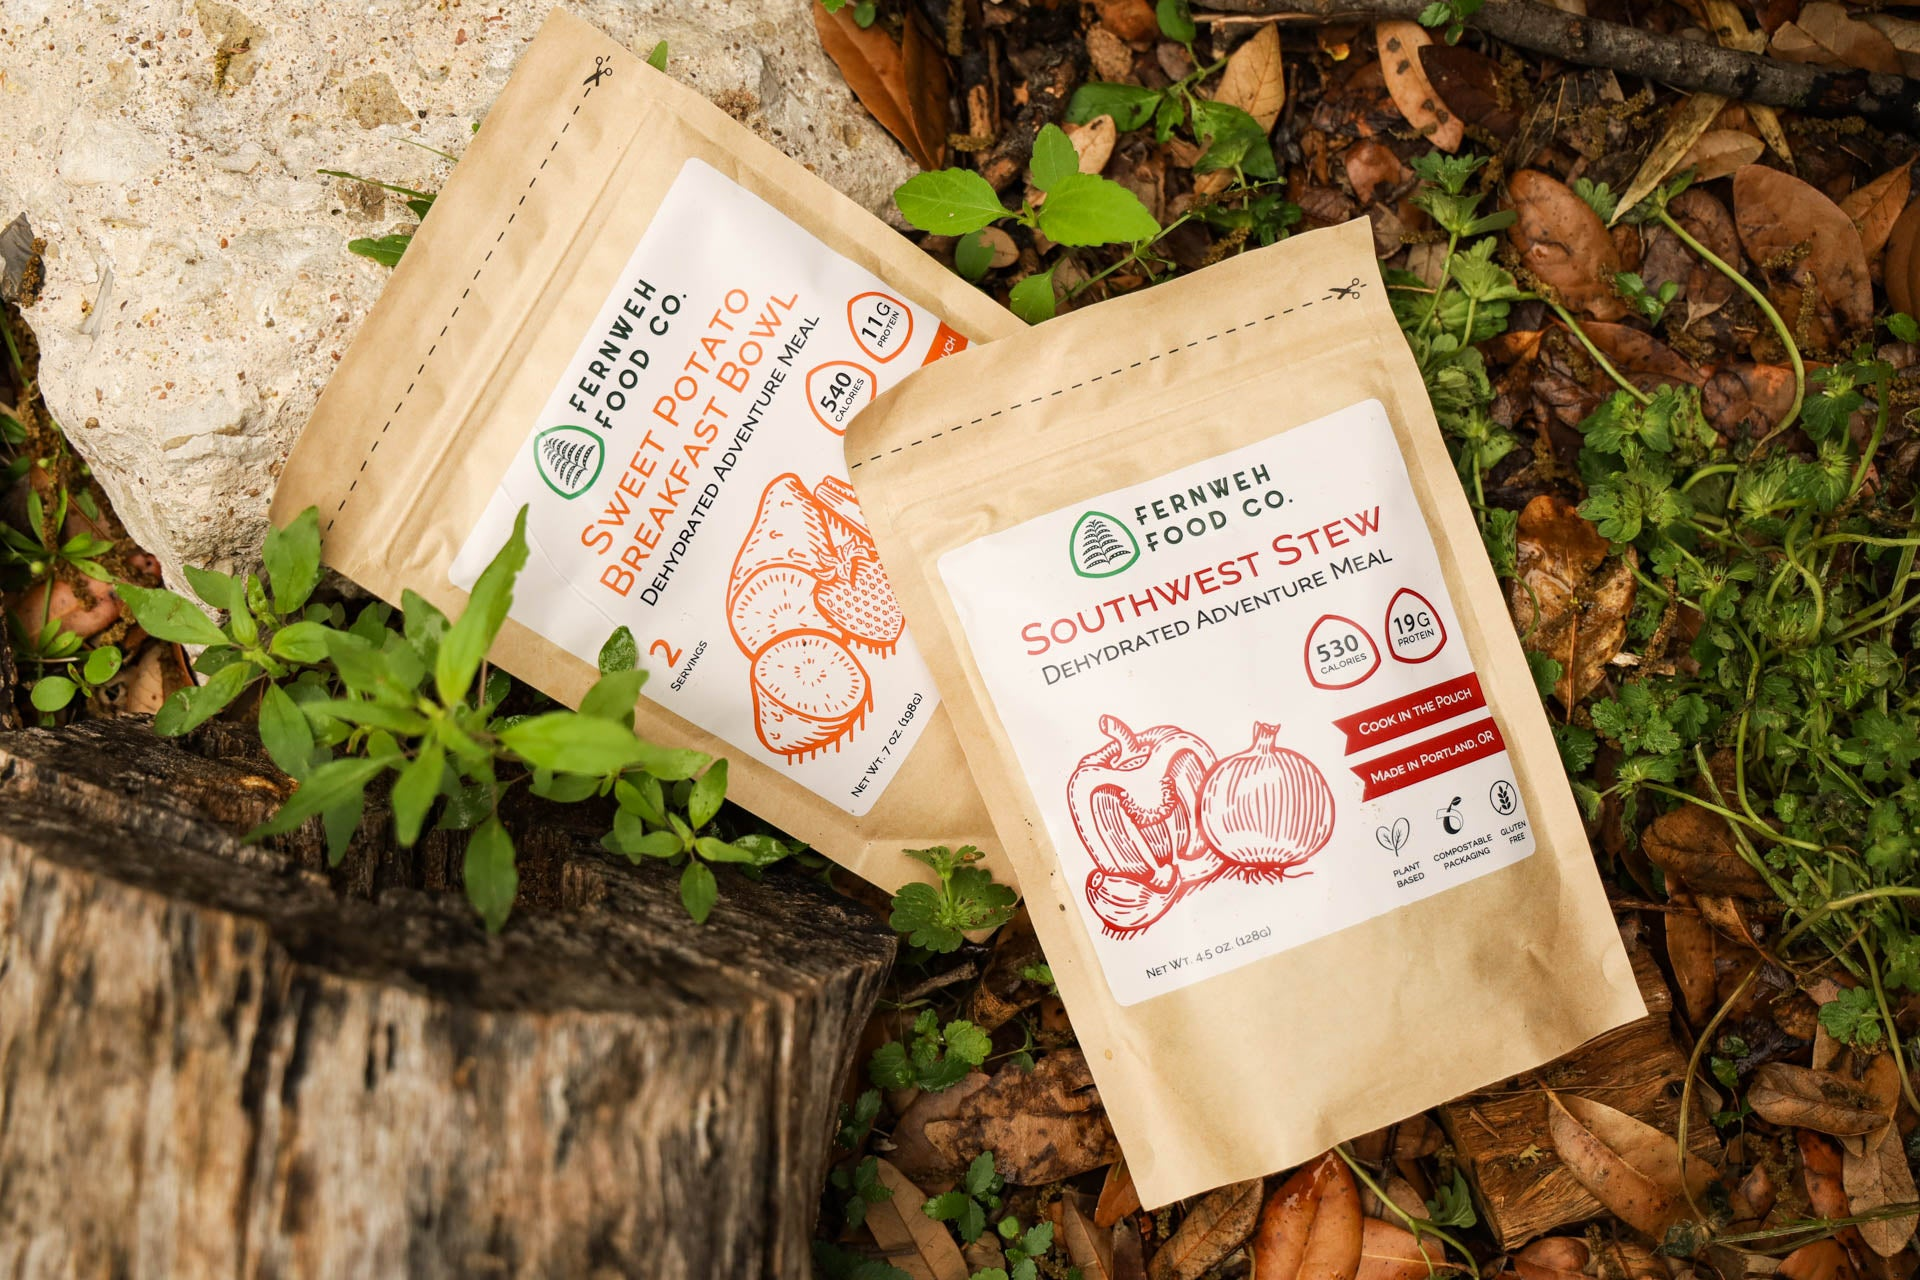 Best Sustainable Backpacking Gear Eco-Friendly Made by Small Brands Fernweh Food Co